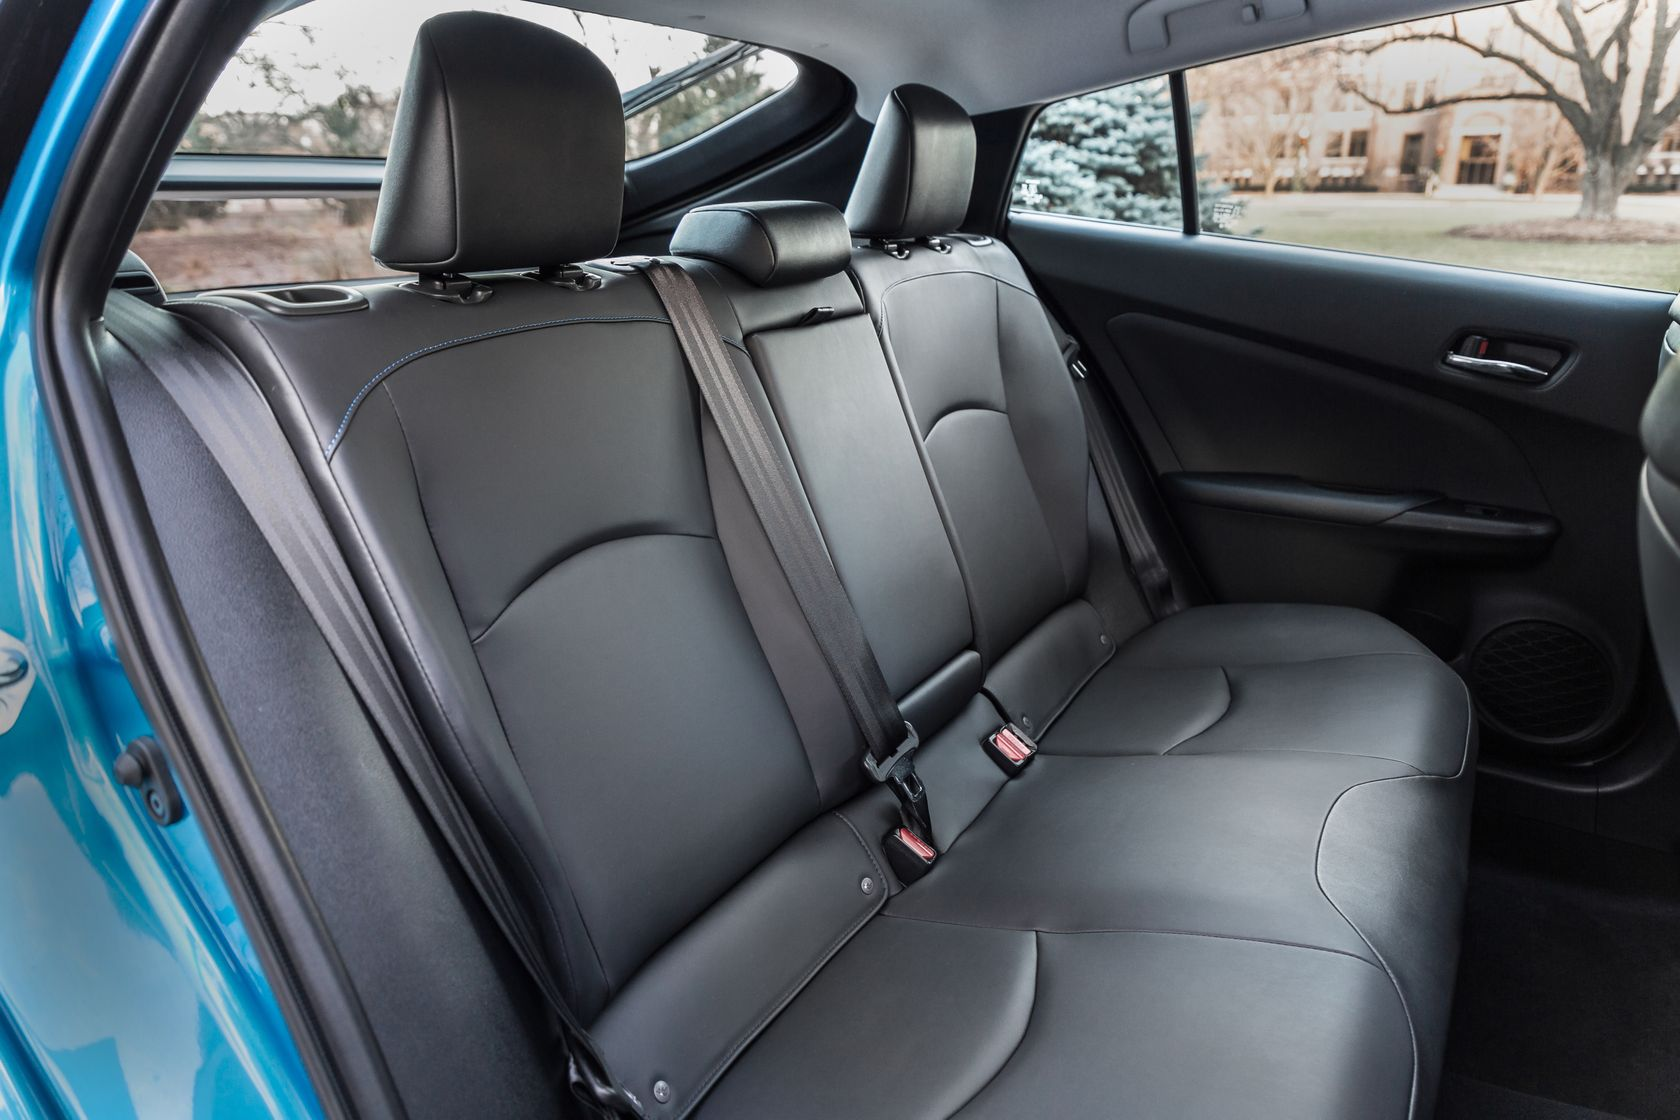 2020 Toyota Prius Interior Seating